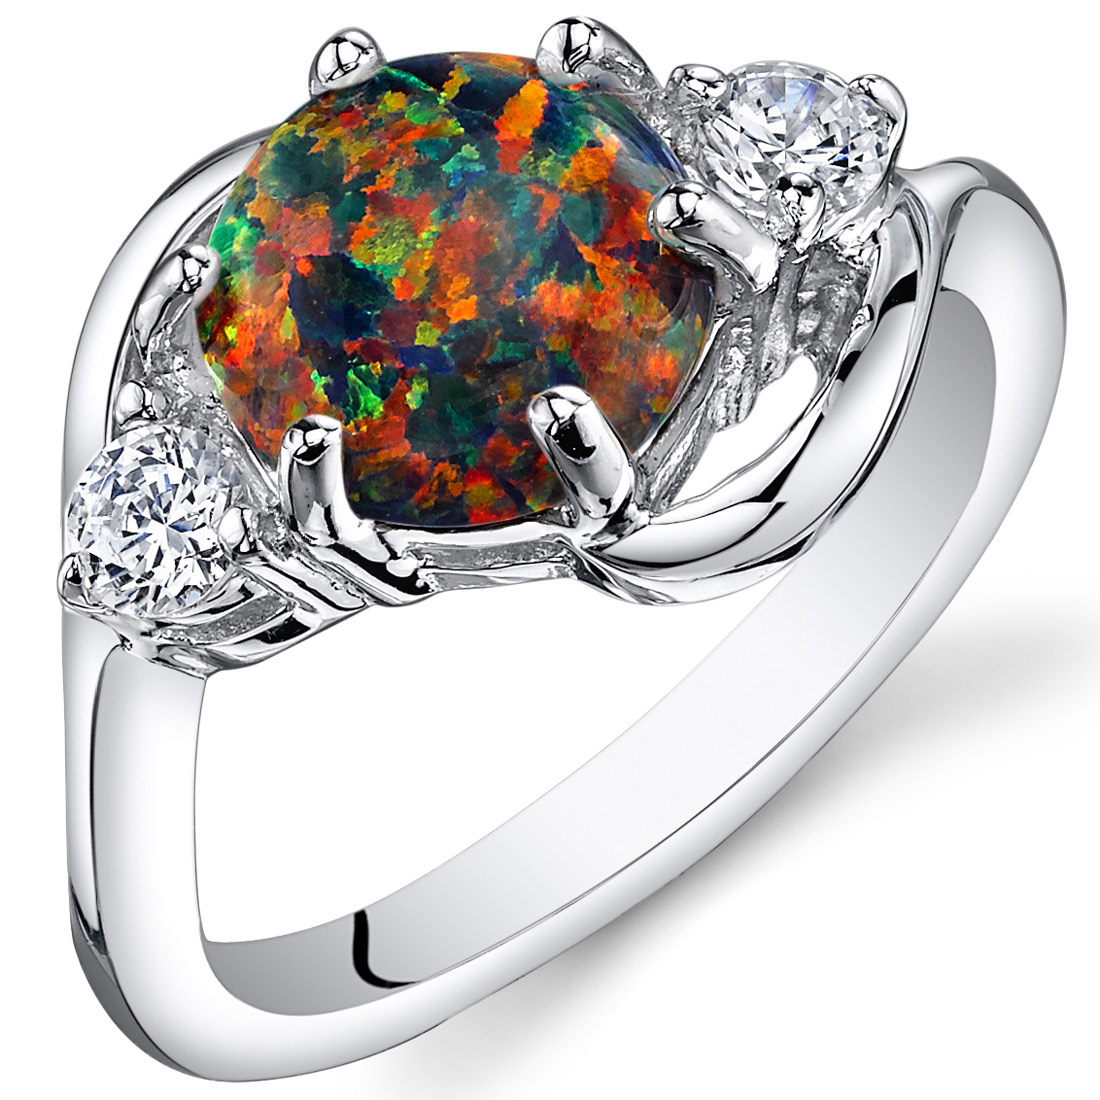 Peora 1.75 3 Stone Black Created Opal Ring in Rhodium-Plated Sterling Silver